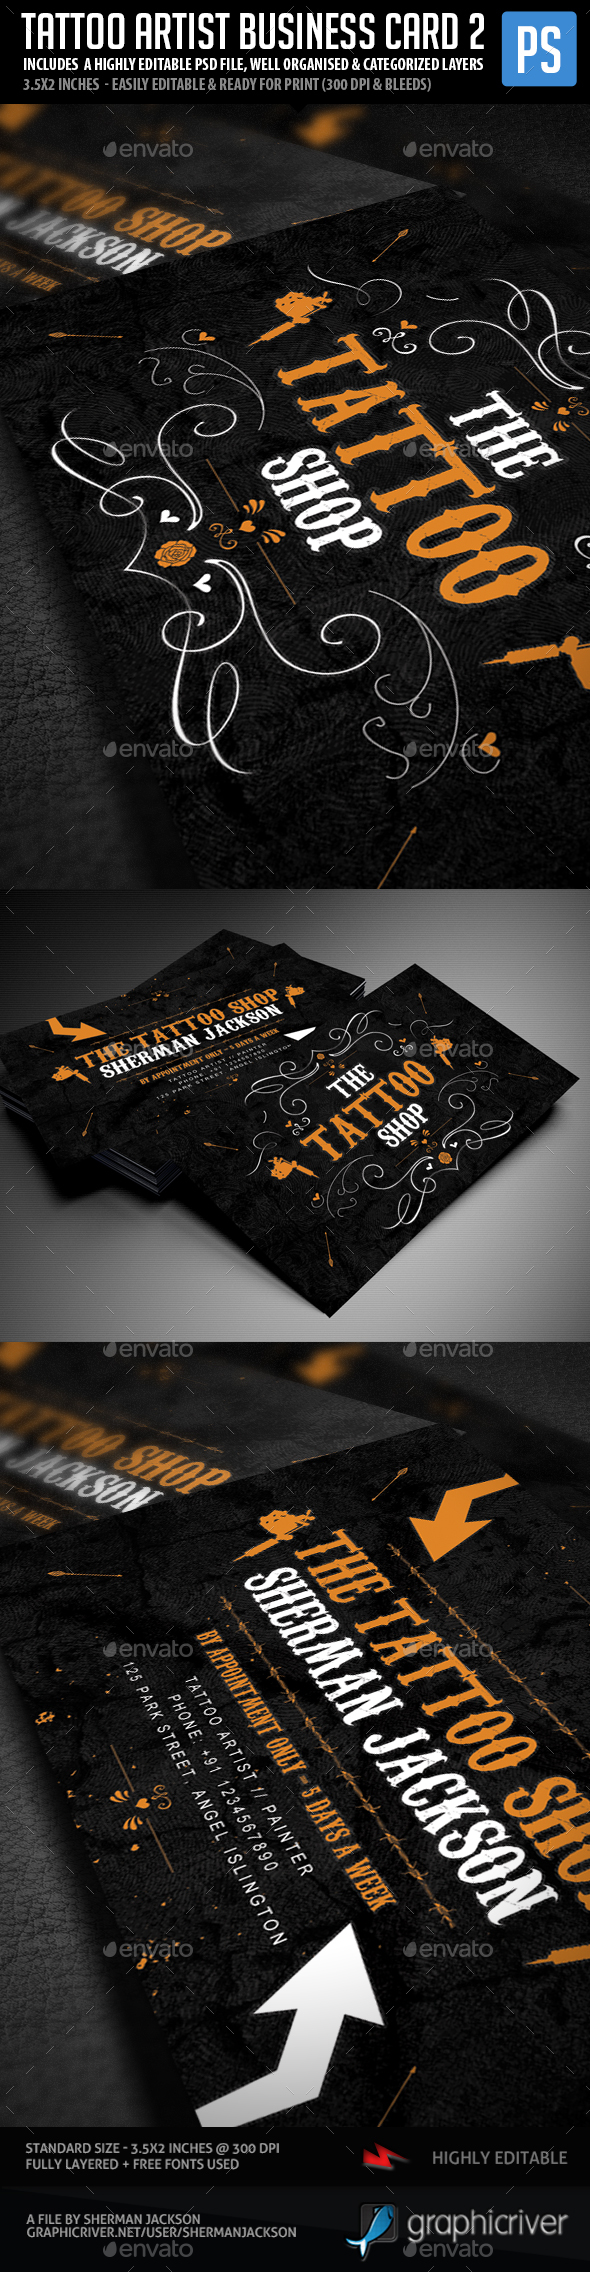 Tattoo Artist Business Cards V.2 by ShermanJackson | GraphicRiver